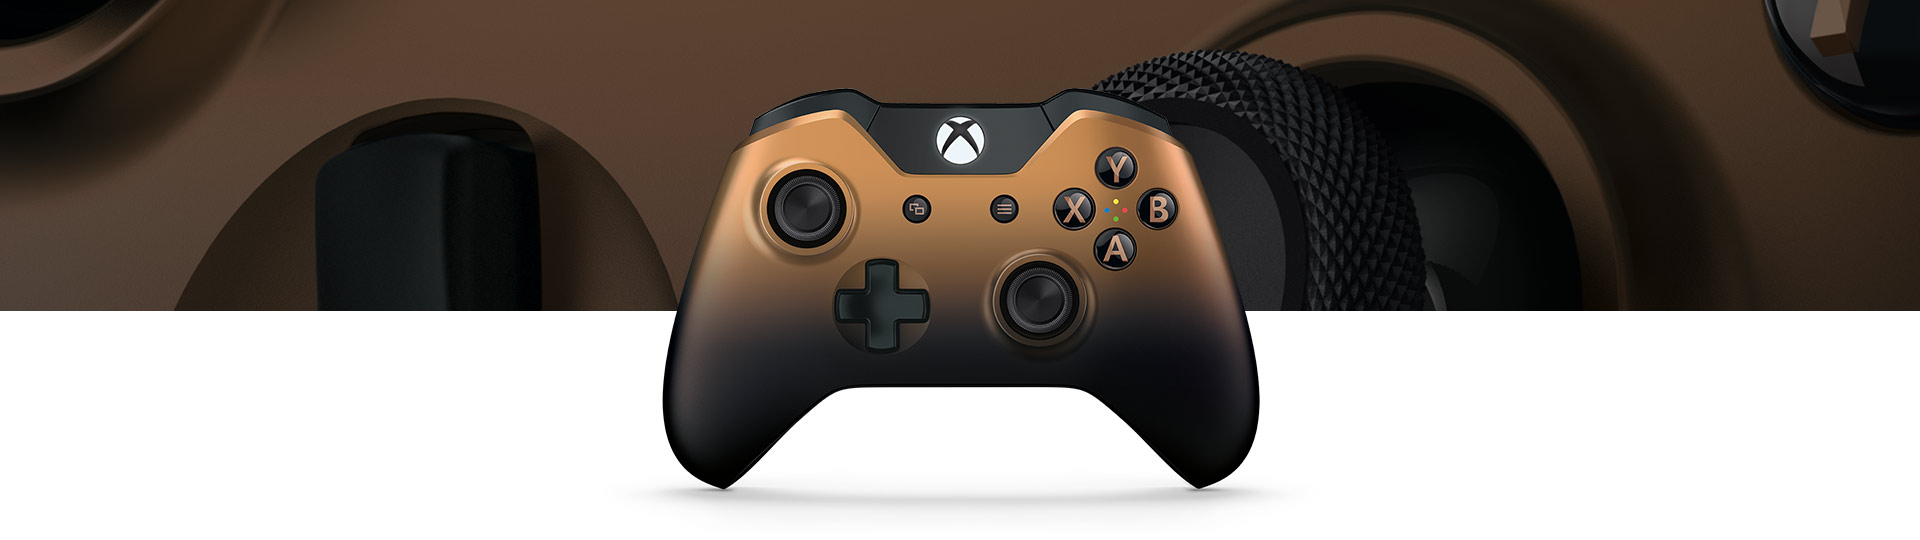 Trådlös Xbox One Special Edition Copper Shadow handkontroll